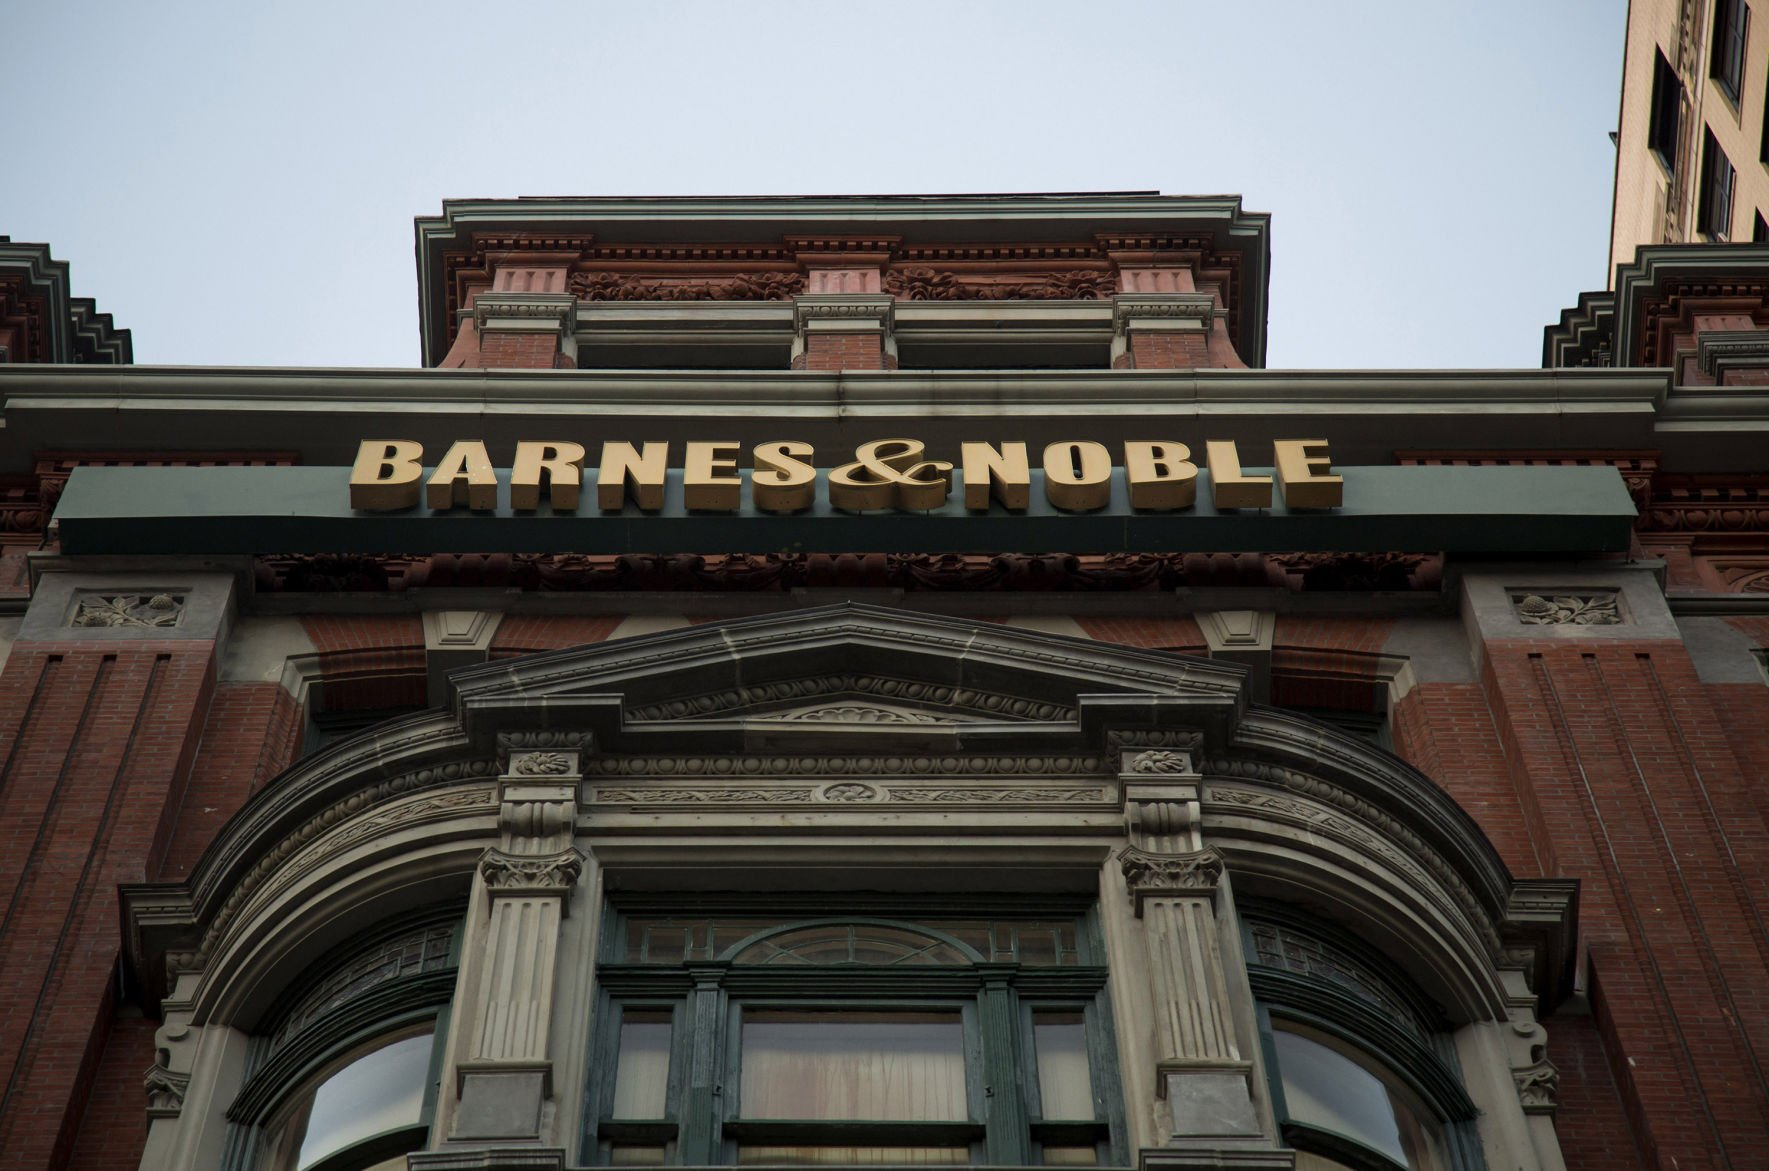 Barnes & Noble can't shake off sluggish sales trend